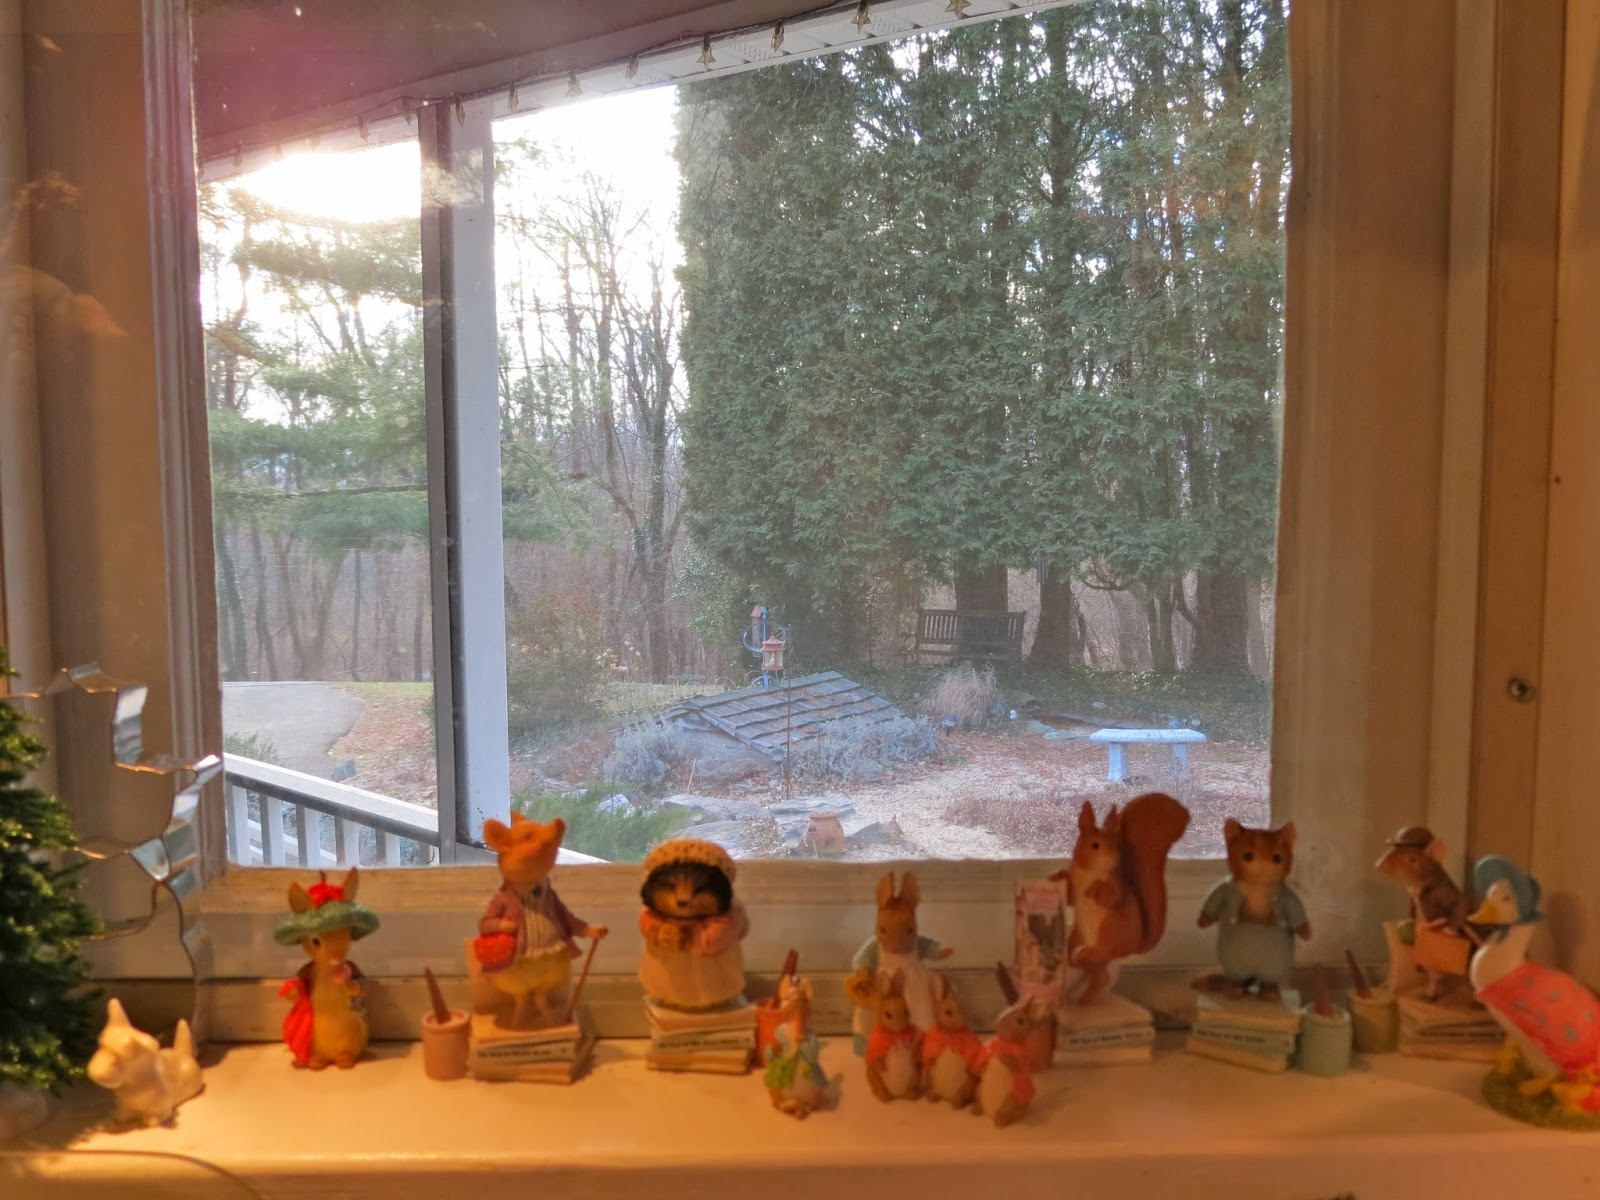 Morning Musings: View Outside My Kitchen Window - January